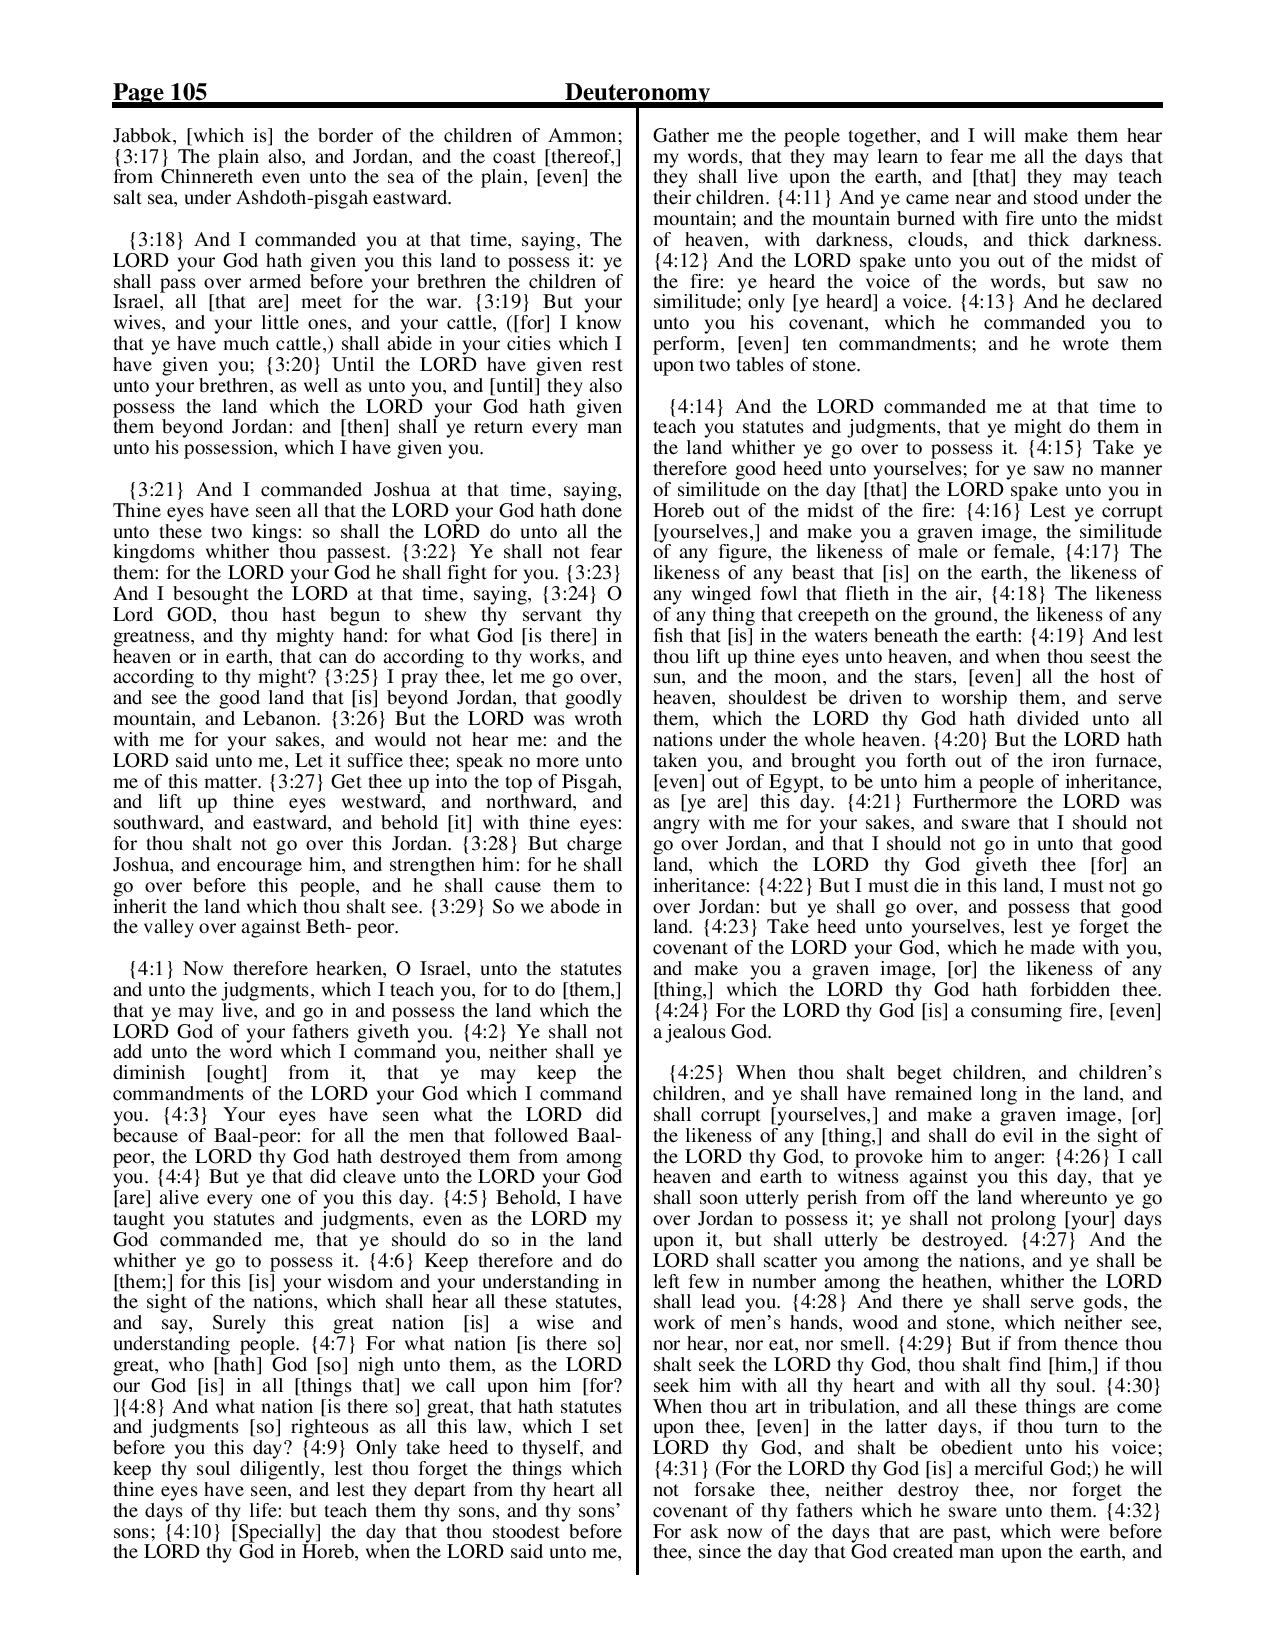 King-James-Bible-KJV-Bible-PDF-page-126